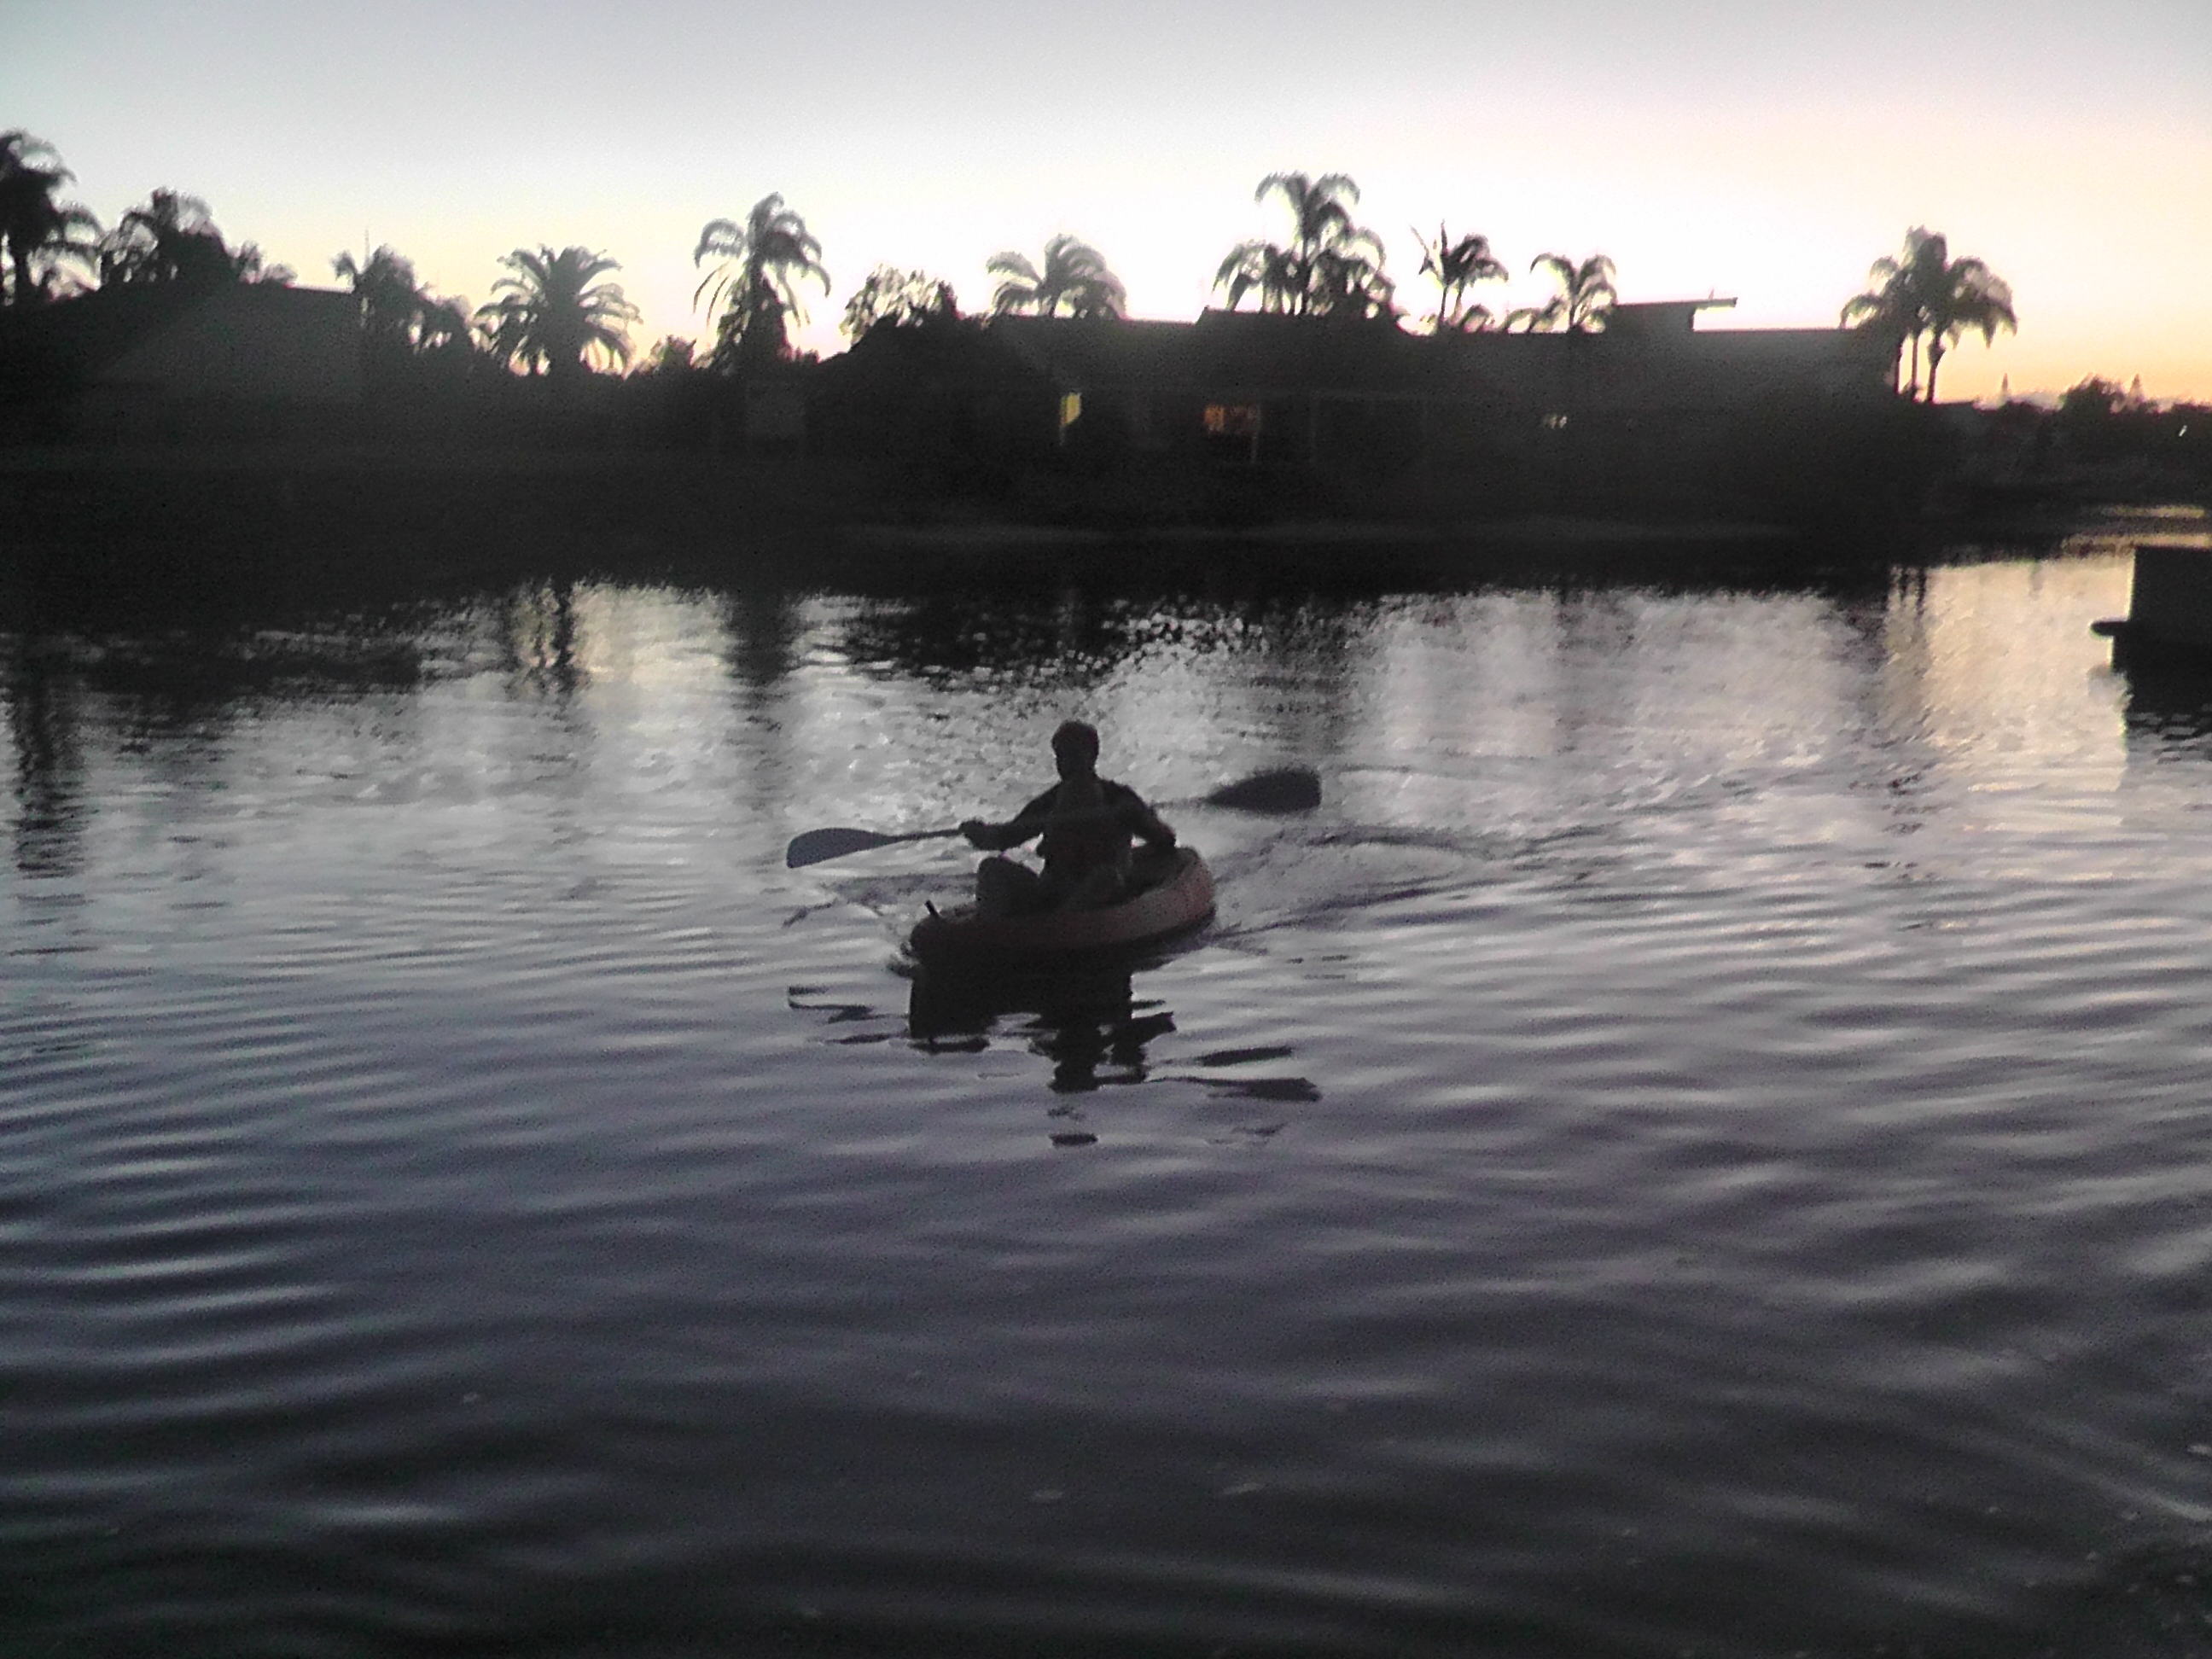 Sunset Kayaking in Mooloolaba - Reuben is in between Lee's legs!